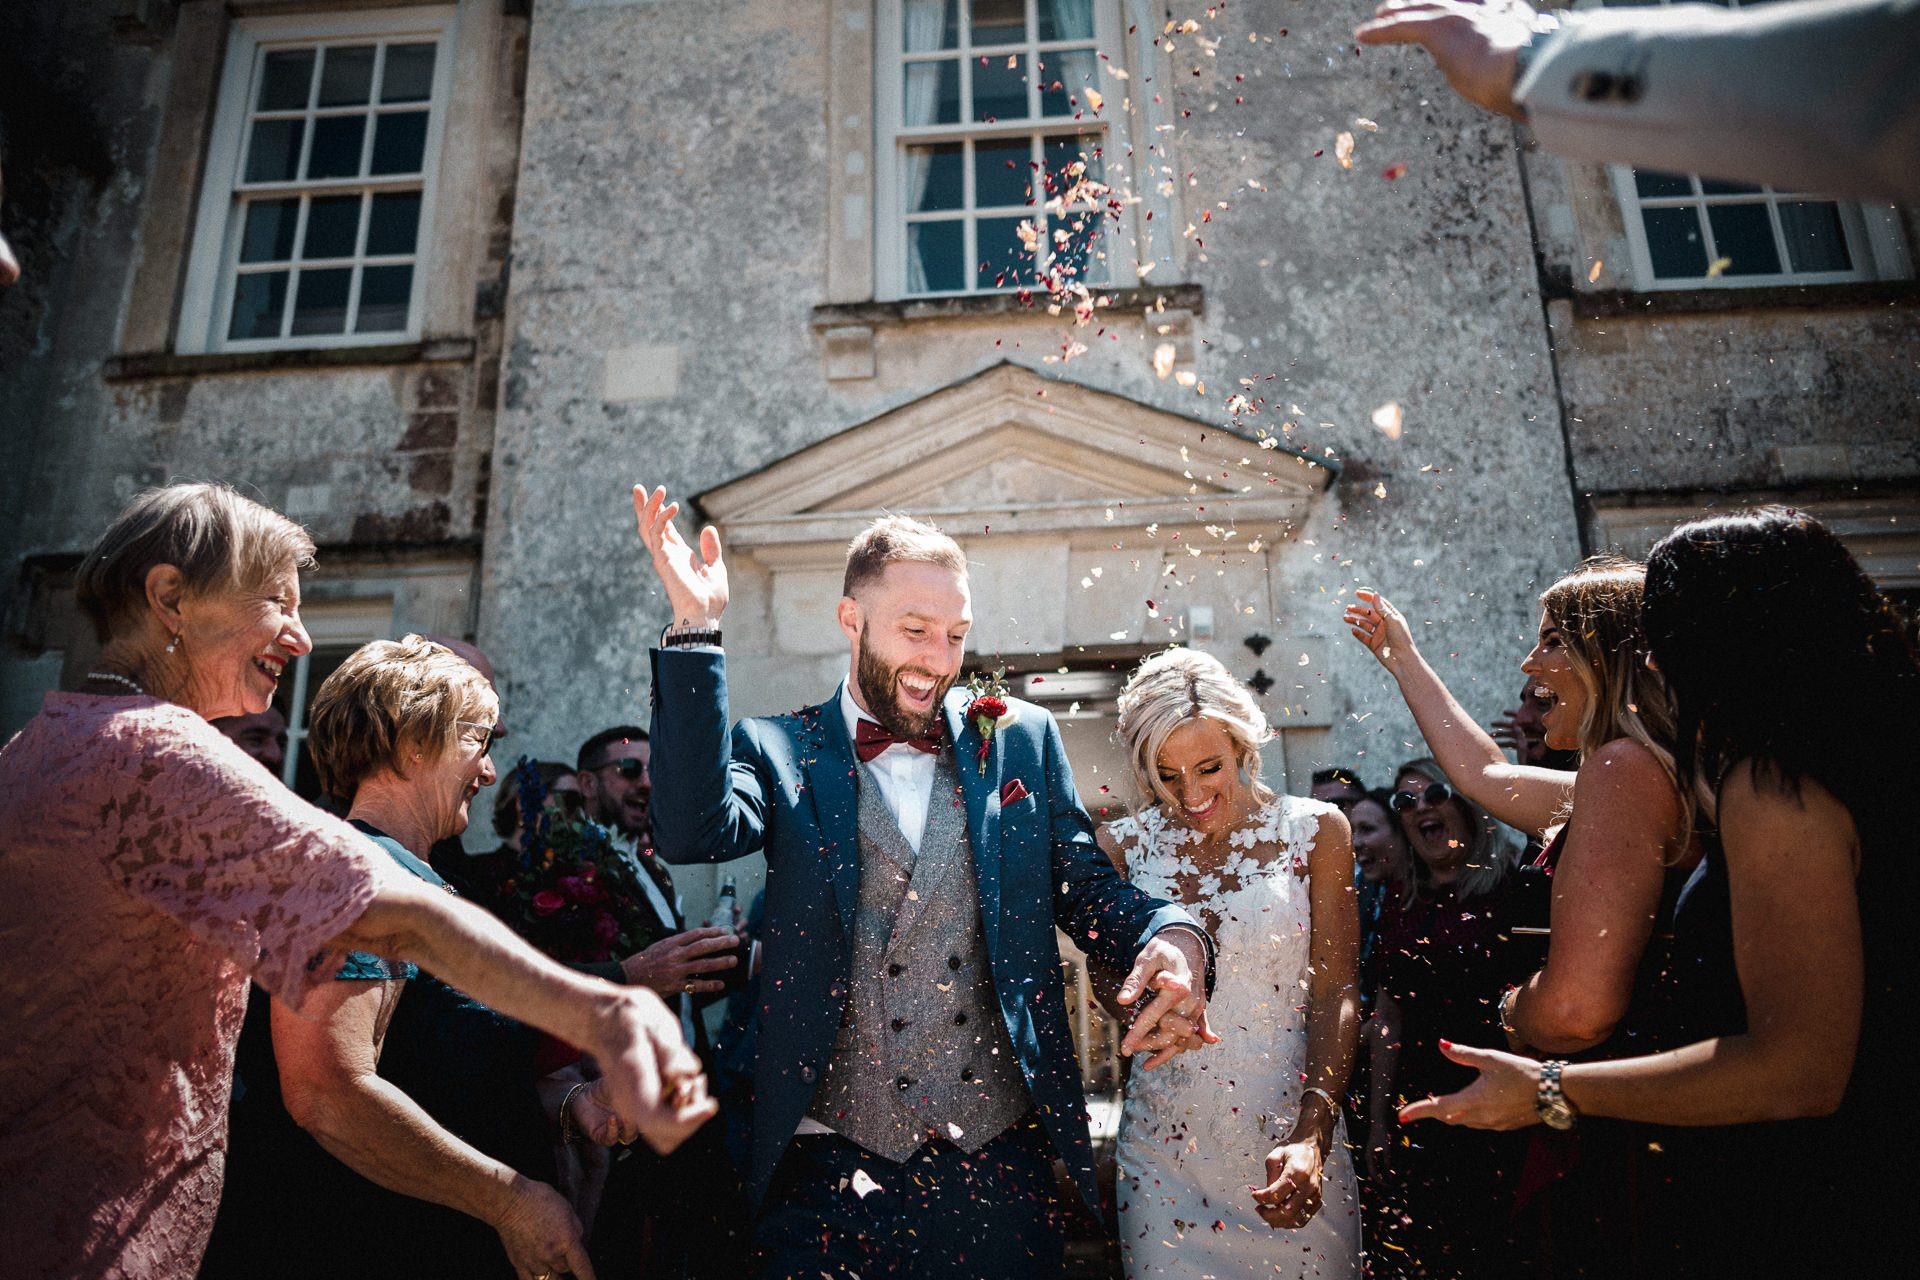 0092-DEVON-SOMERSET-WEDDING-PHOTOGRAPHER-0403-BEST-OF-2019-LOUISE-MAY-DEVON-SOMERSET-WEDDING-PHOTOGRAPHY-LM2_1734